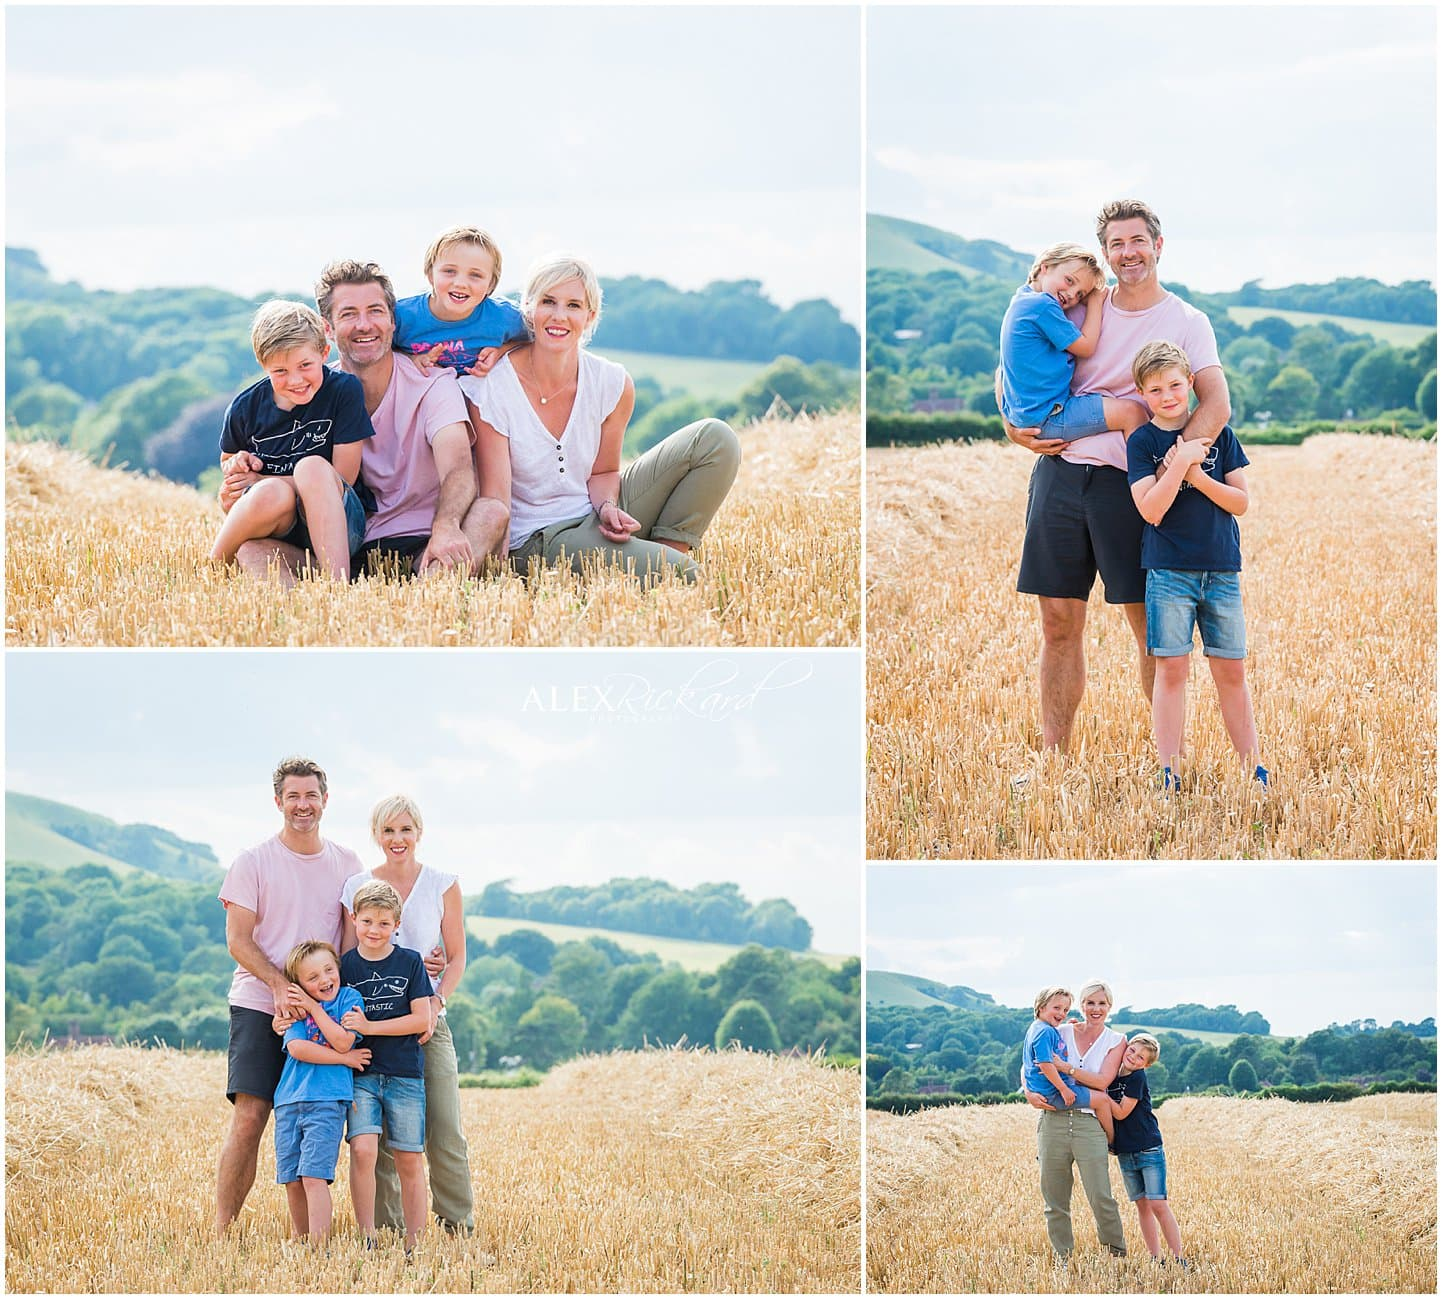 montage of pictures of a family in a cornfield